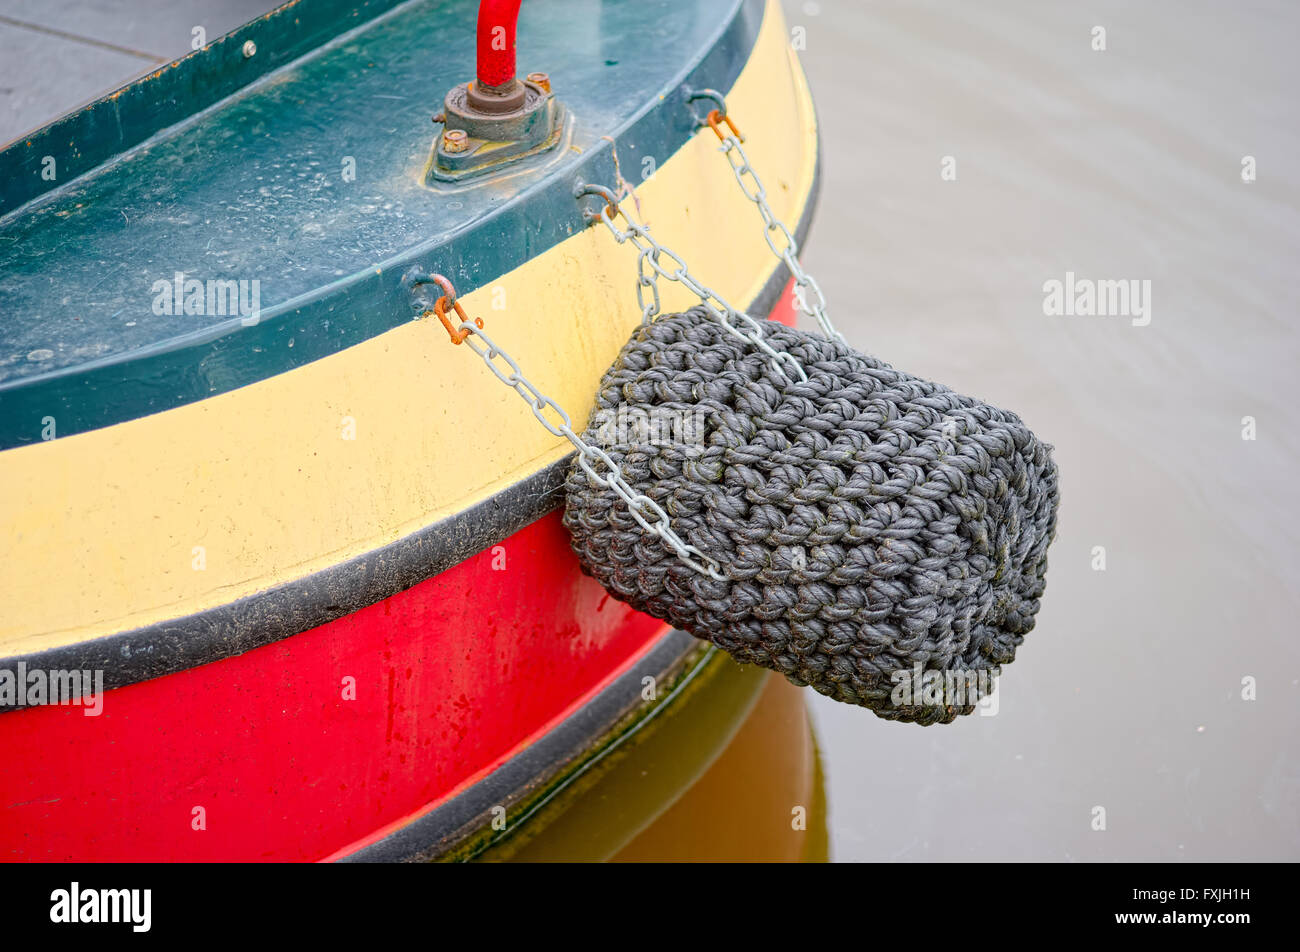 detail of canal narrowboat - Stock Image